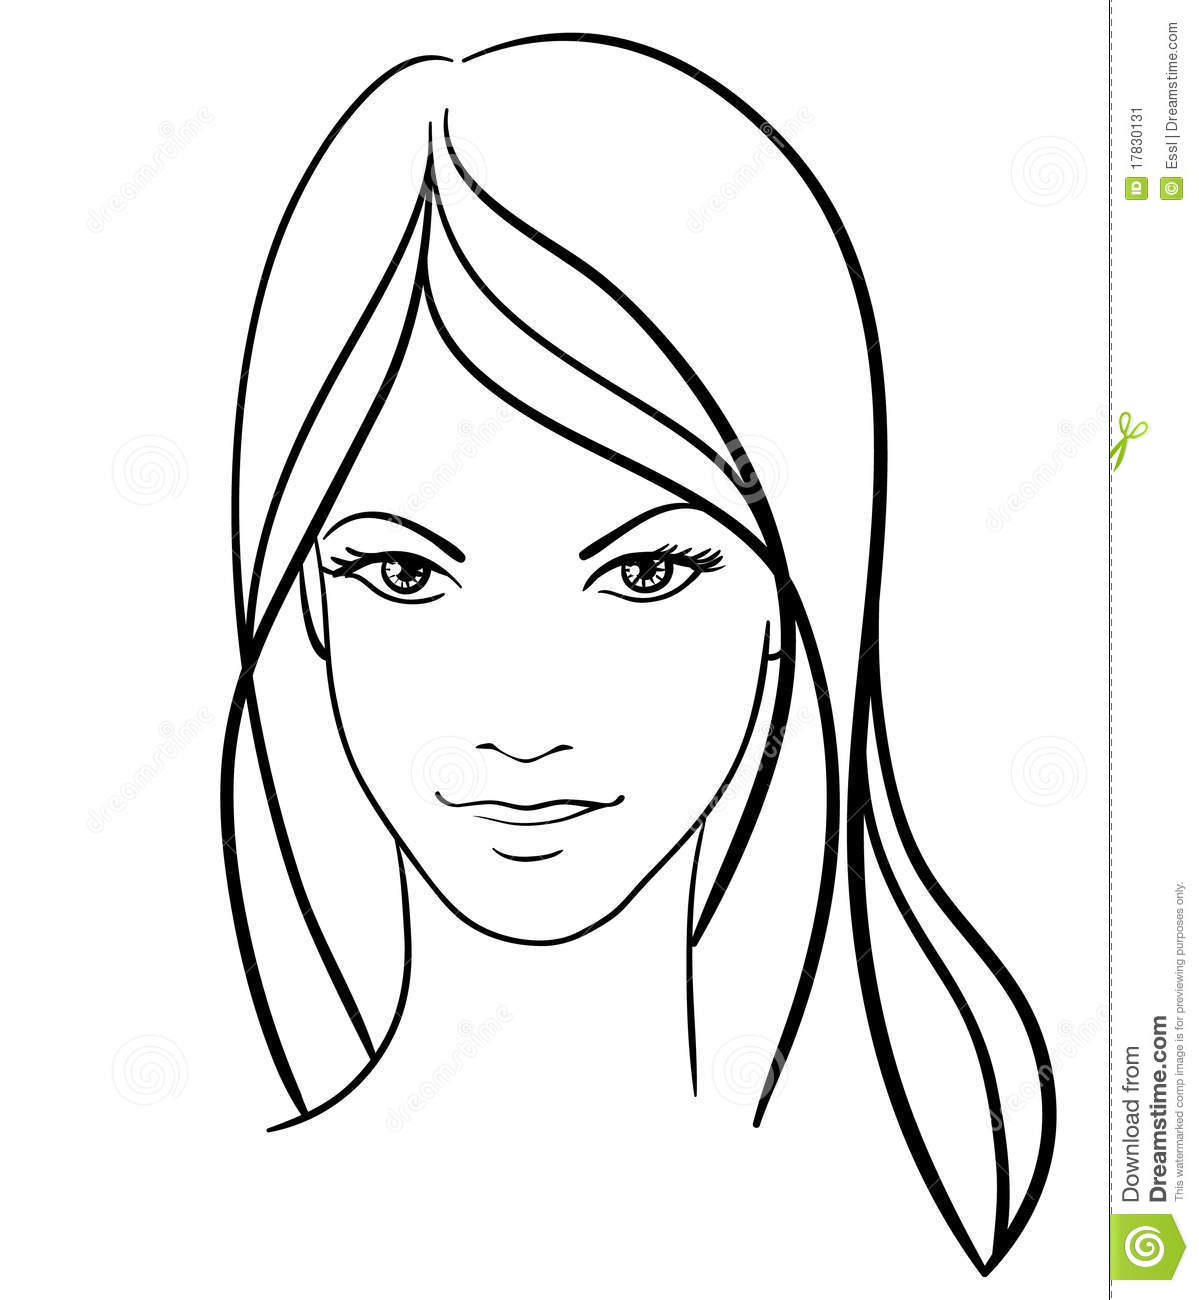 Simple Line Drawing Of A Face : Beauty girl face icon stock vector illustration of